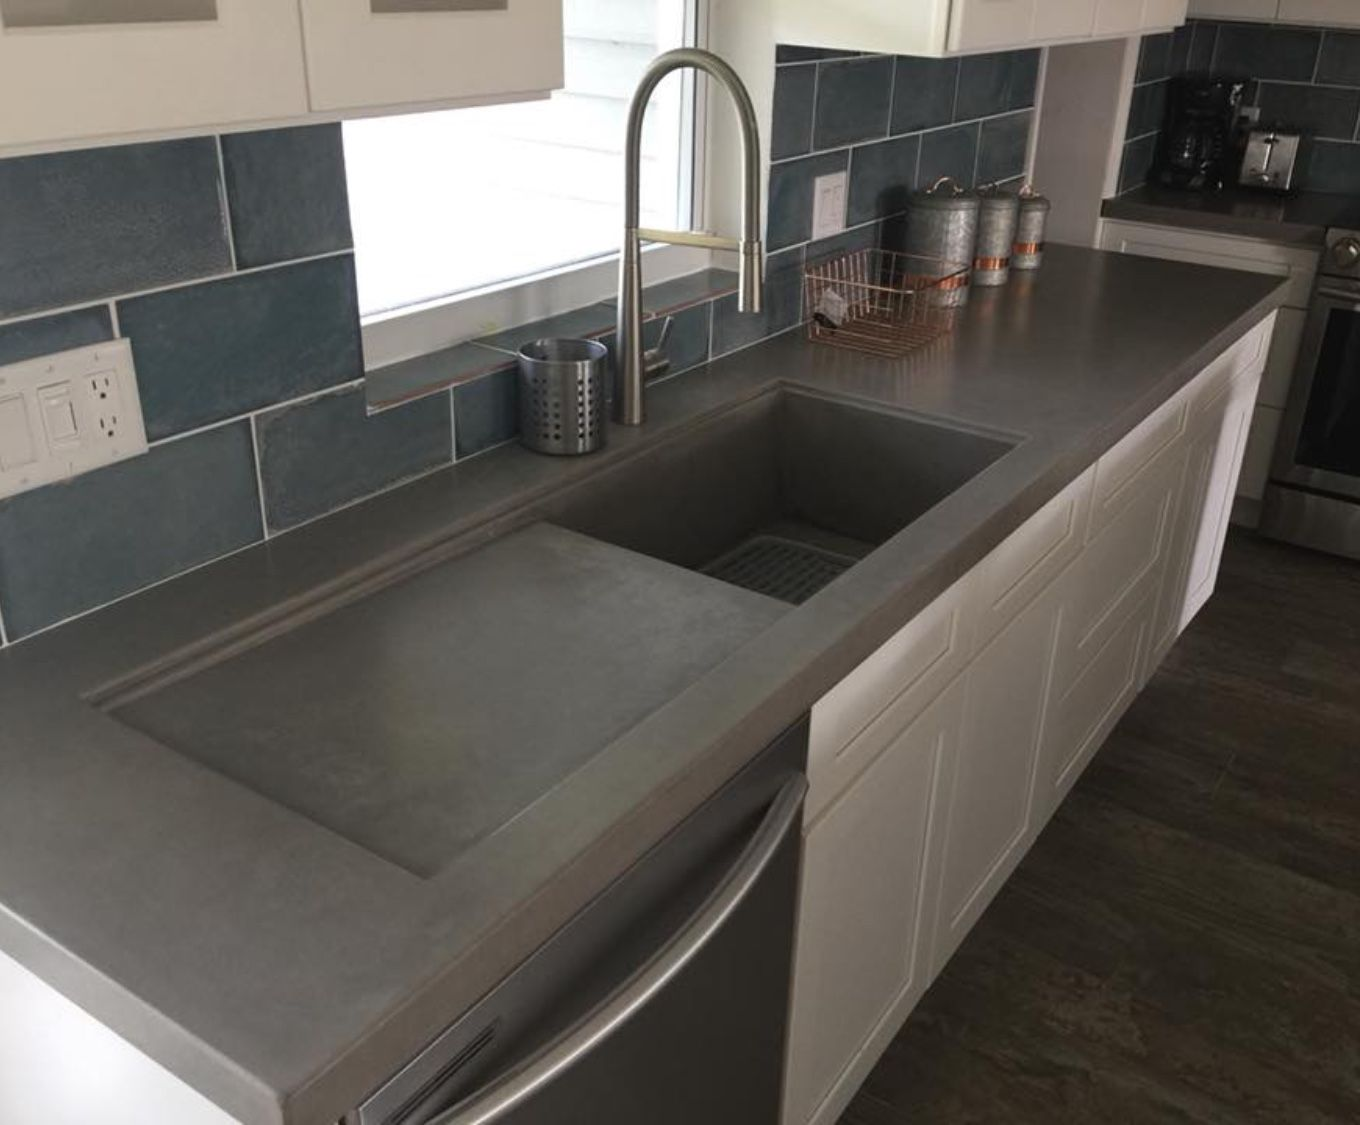 Concrete Countertop With Integrated Sink And Drainboard Www Kingsmenconcrete Com Encimeras De Concreto Cocinas De Casa Remodelacion De Cocinas